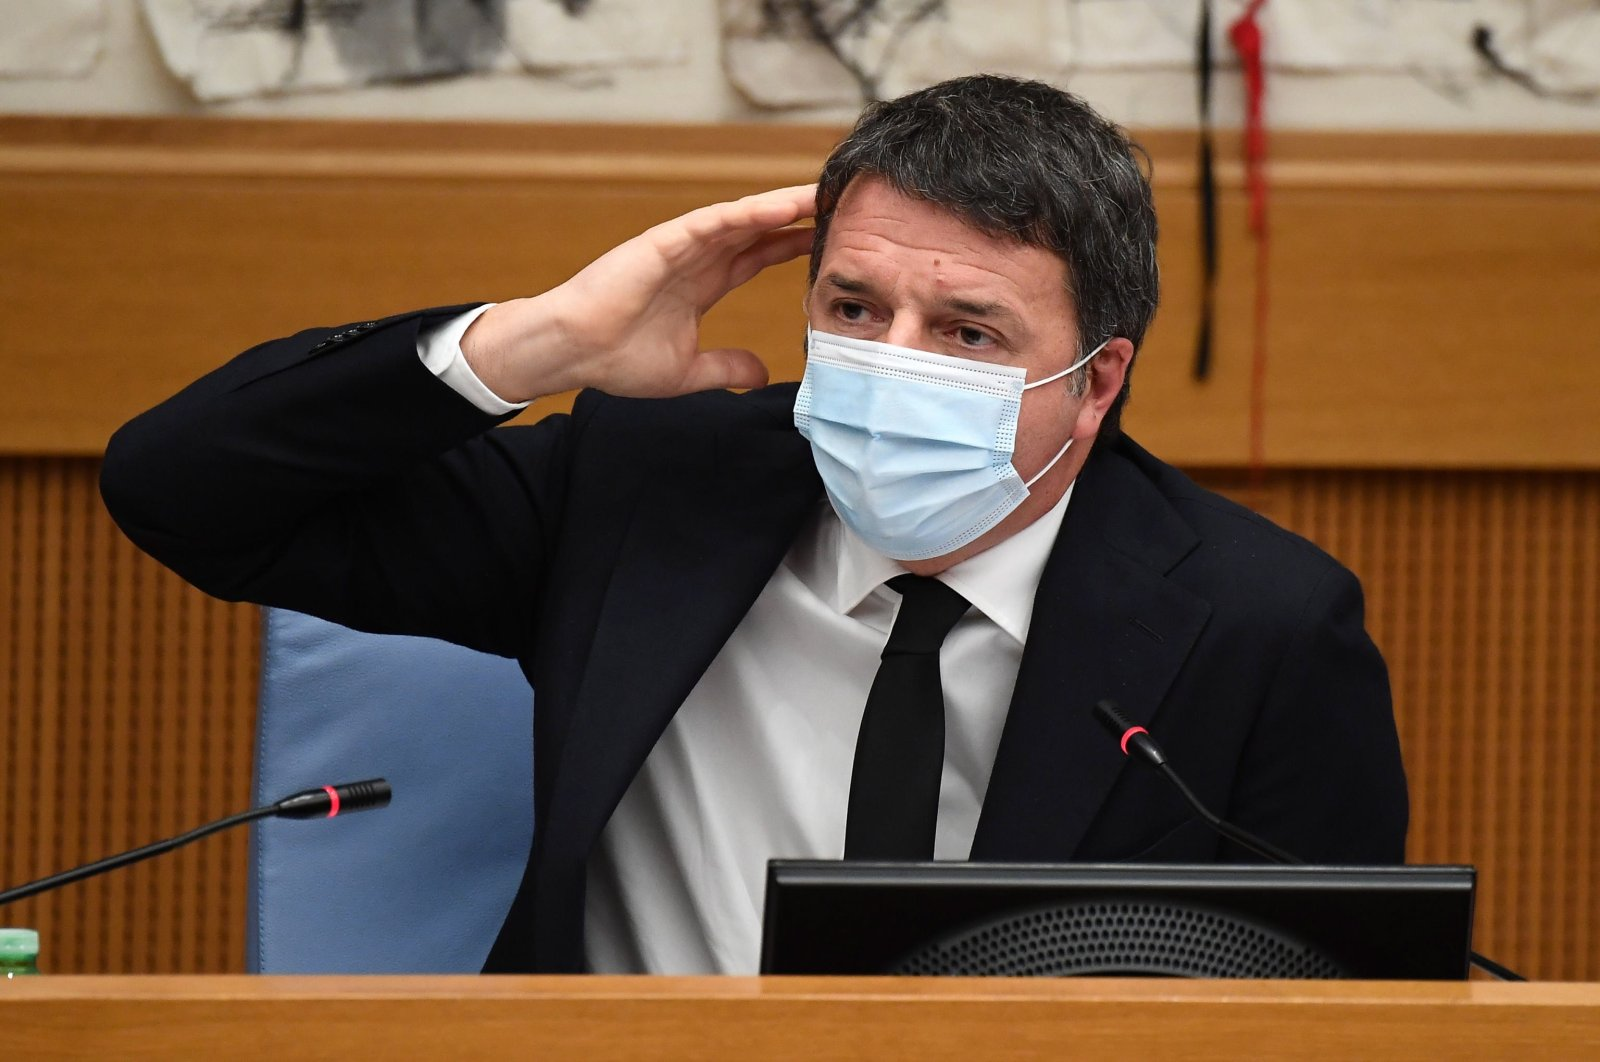 Leader of Italia Viva party Matteo Renzi gestures during a press conference in the group room of the Chamber of Deputies in Rome, Italy, Jan. 13, 2021. (EPA Photo)